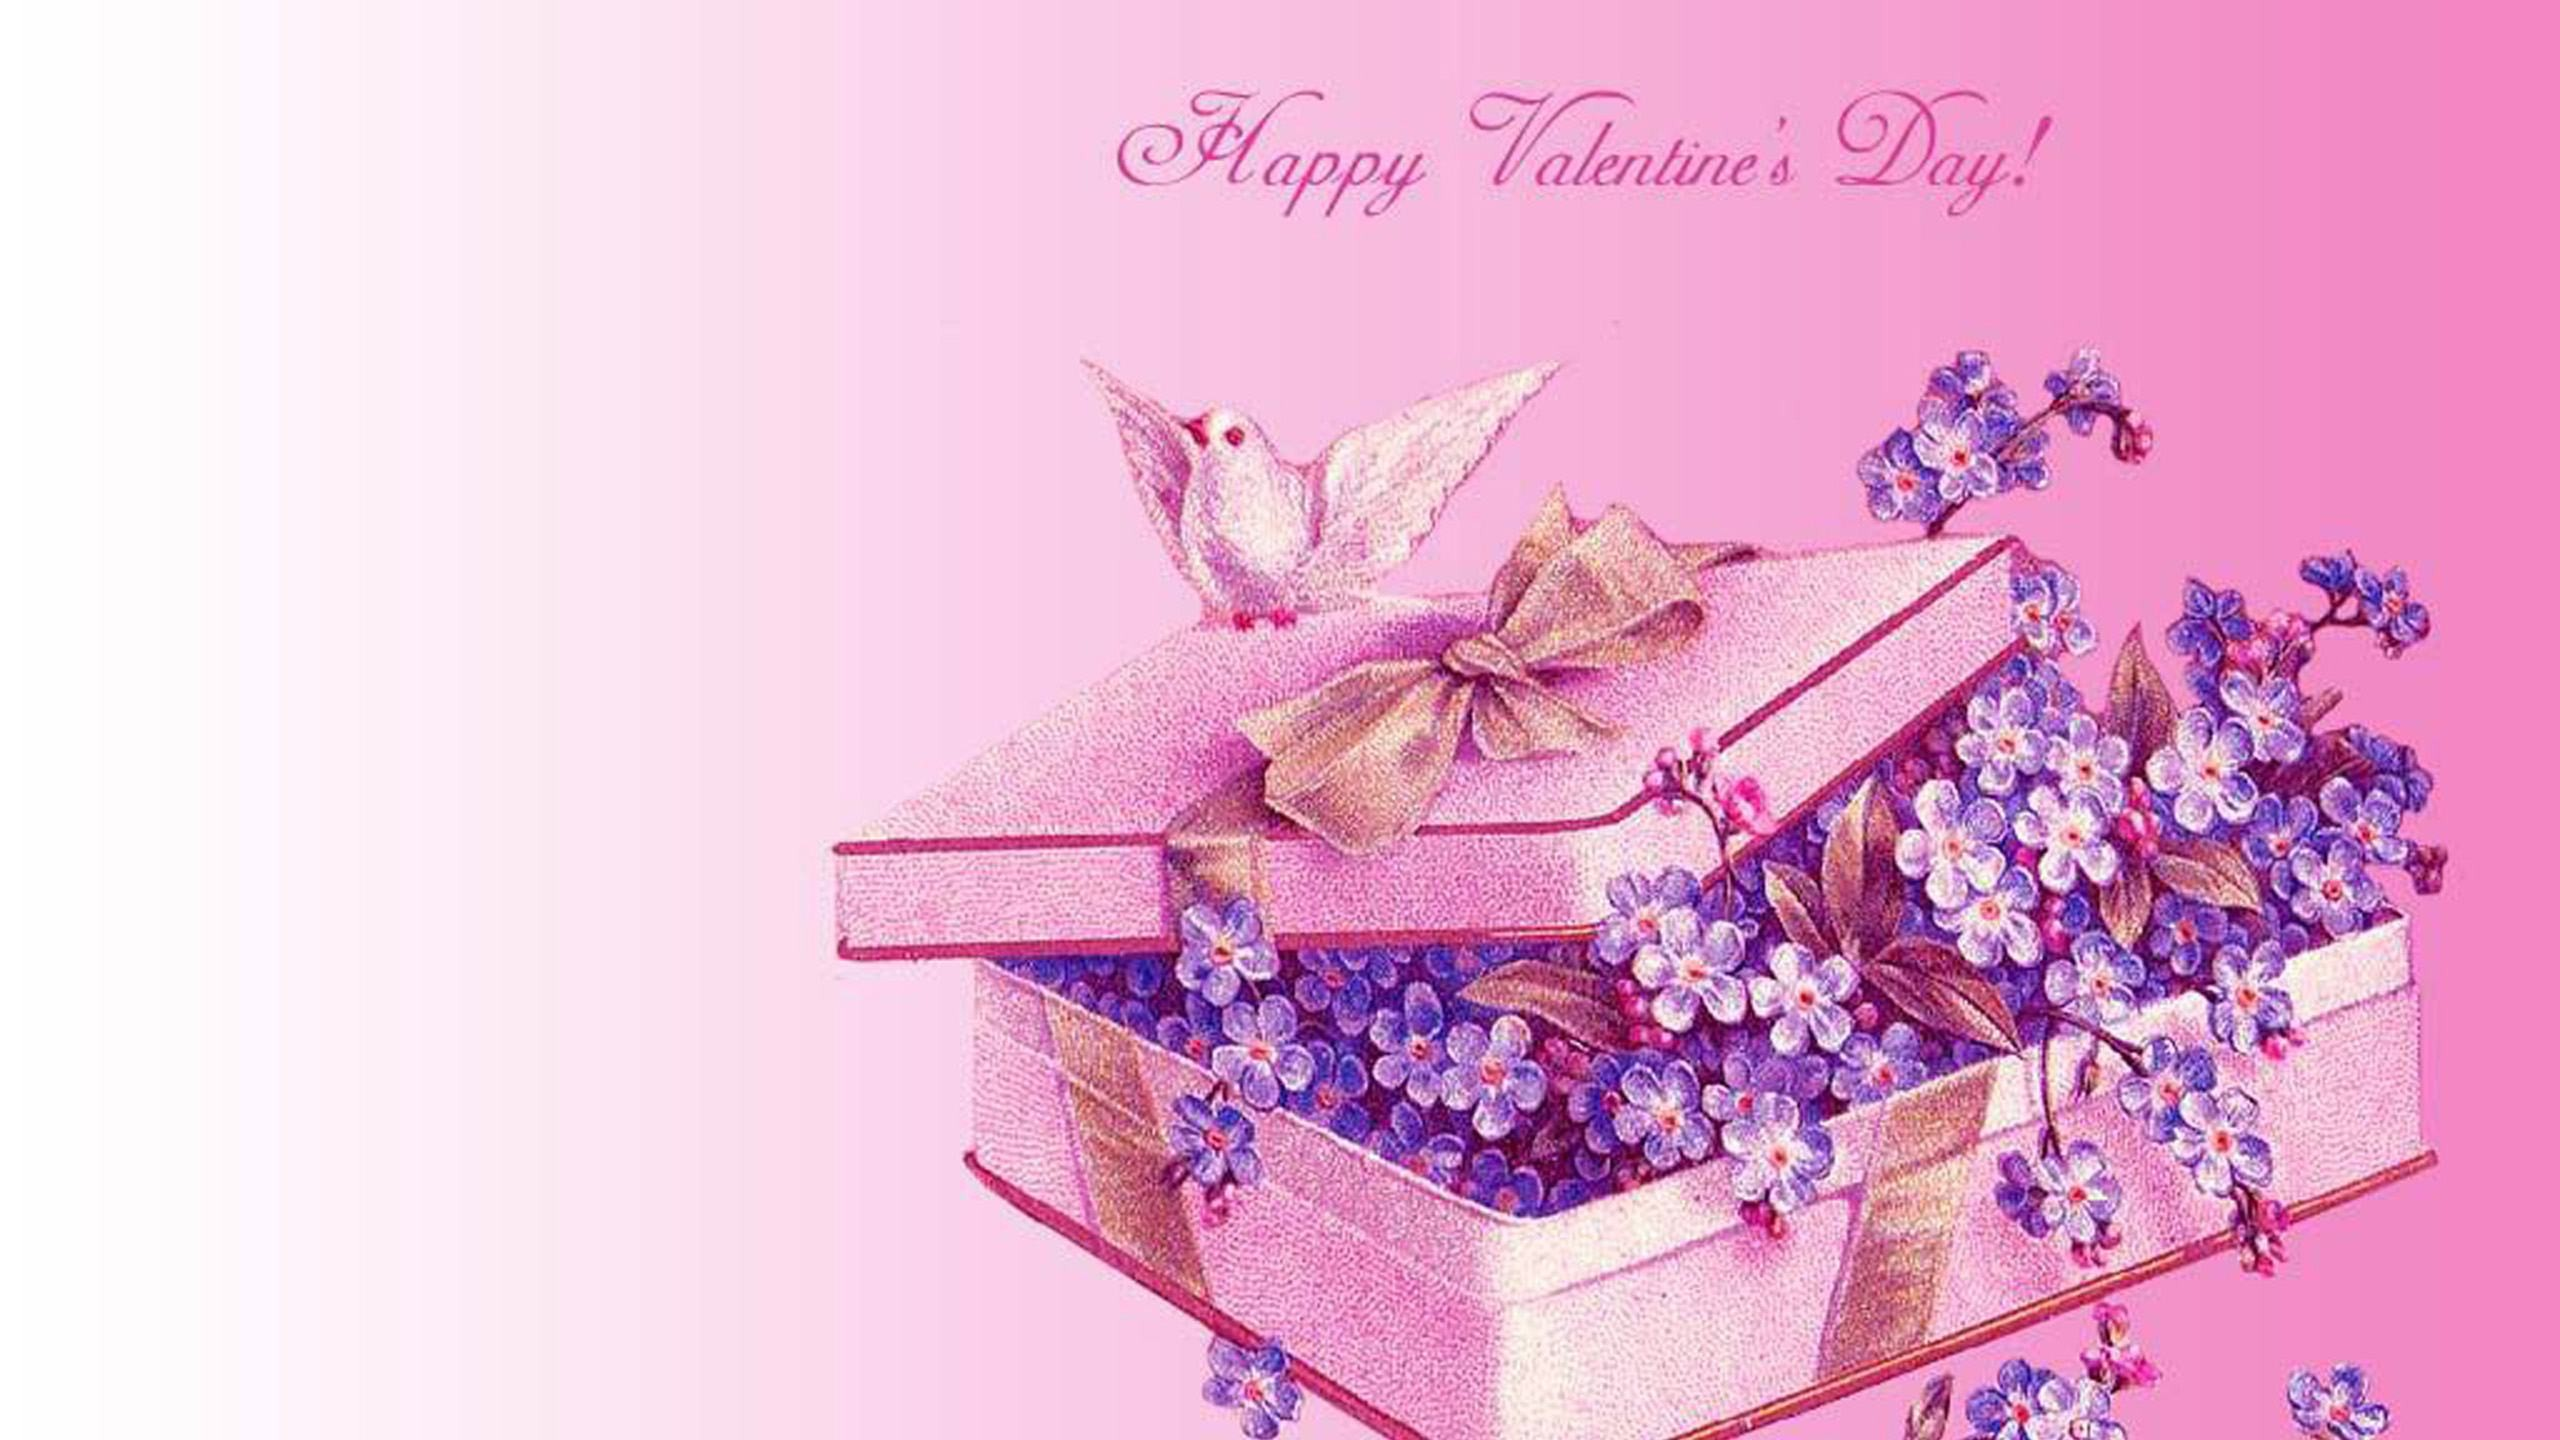 2560x1440 Happy Valentines Day Images HD.